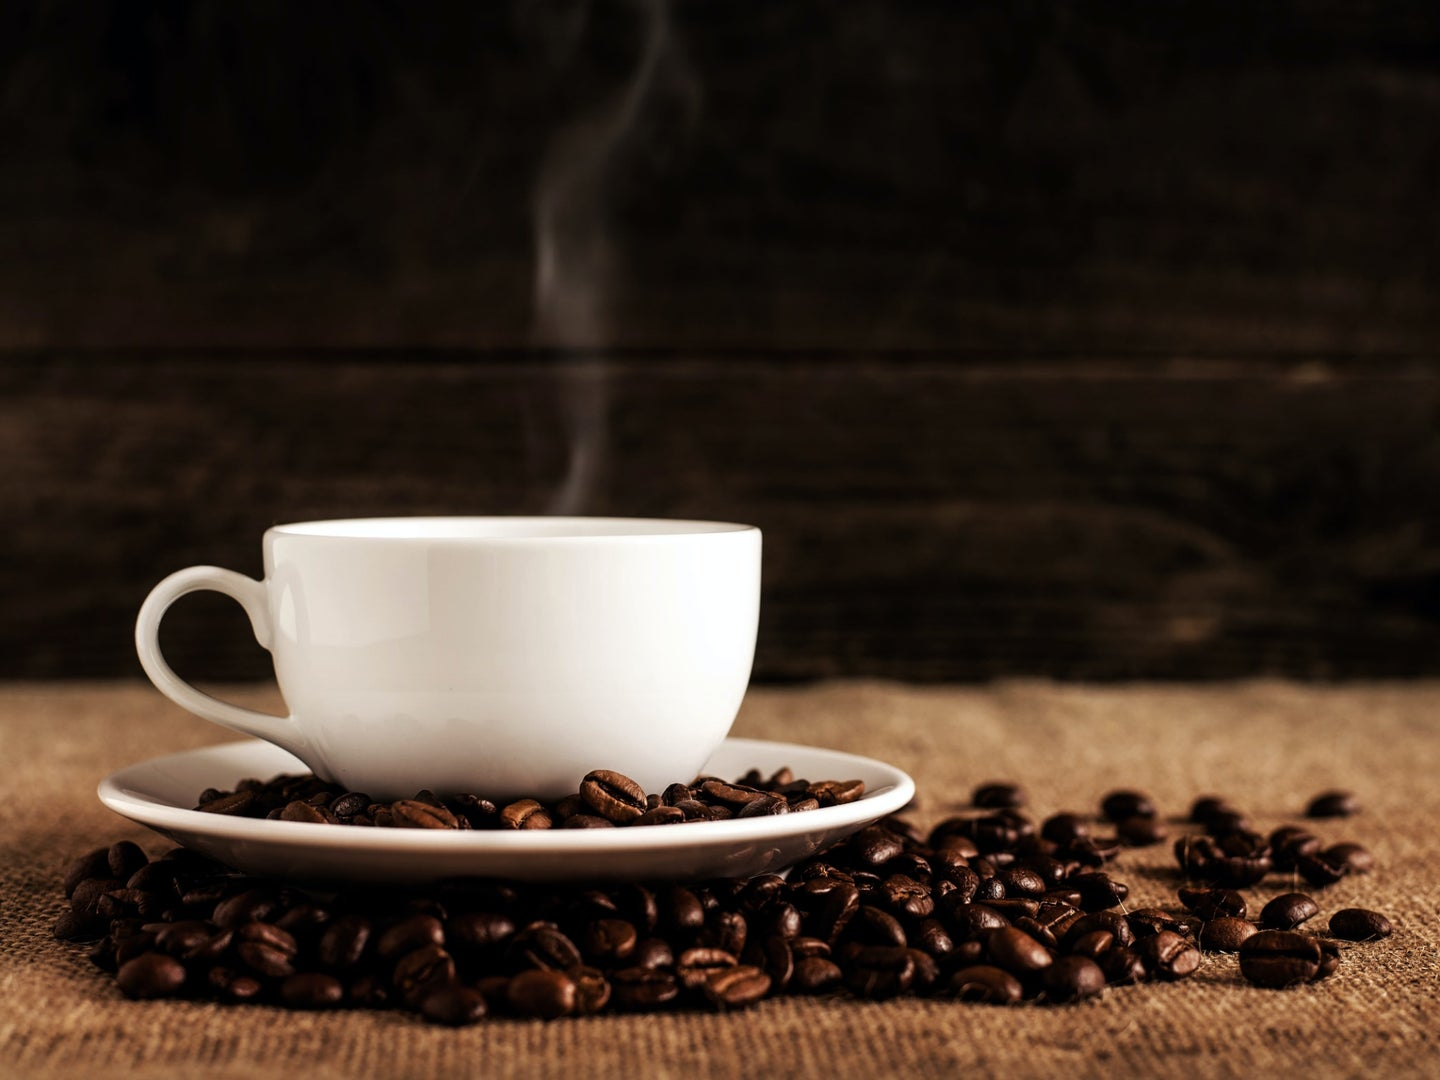 A white mug full of hot coffee on a white saucer, surrounded by roasted coffee beans.